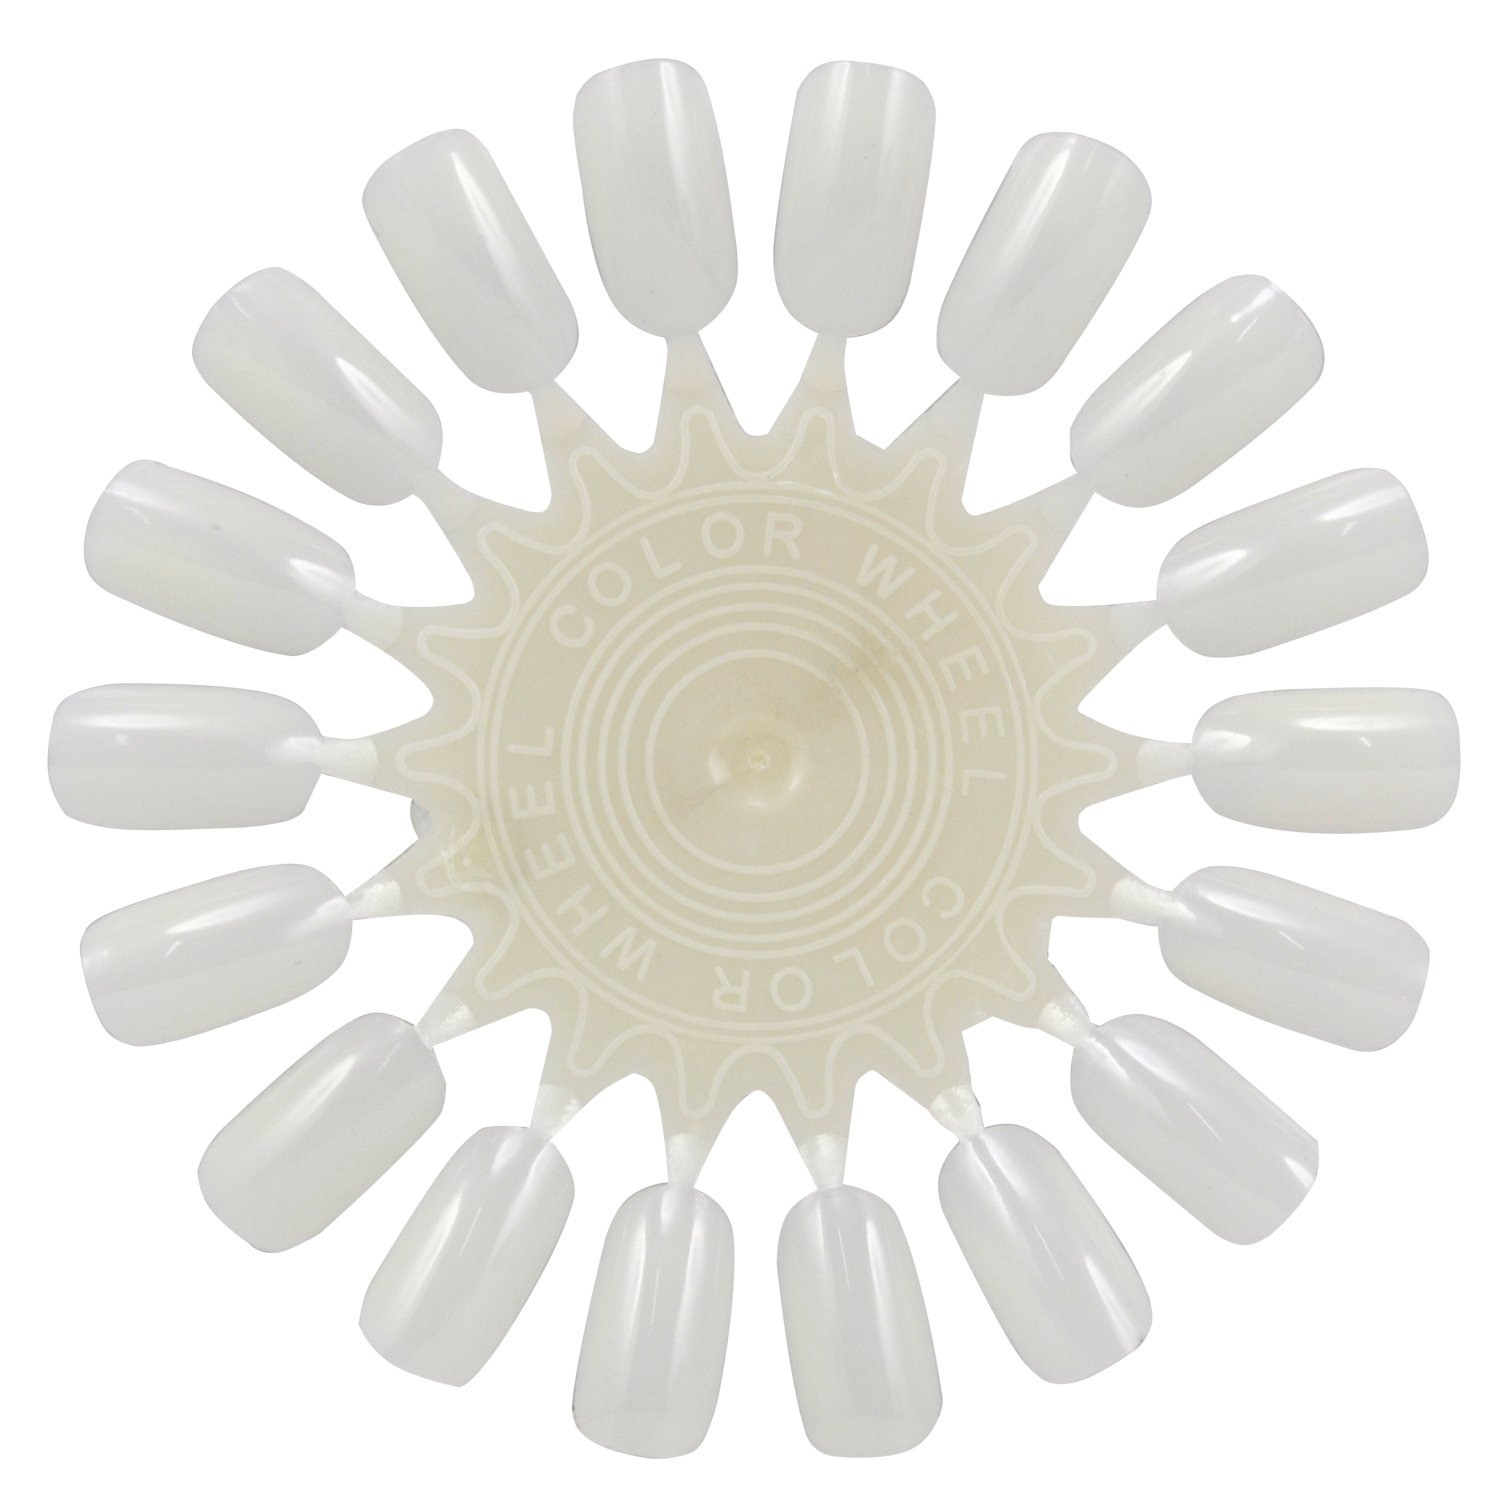 10 x Natural White Nail Art Wheels: Amazon.co.uk: Beauty